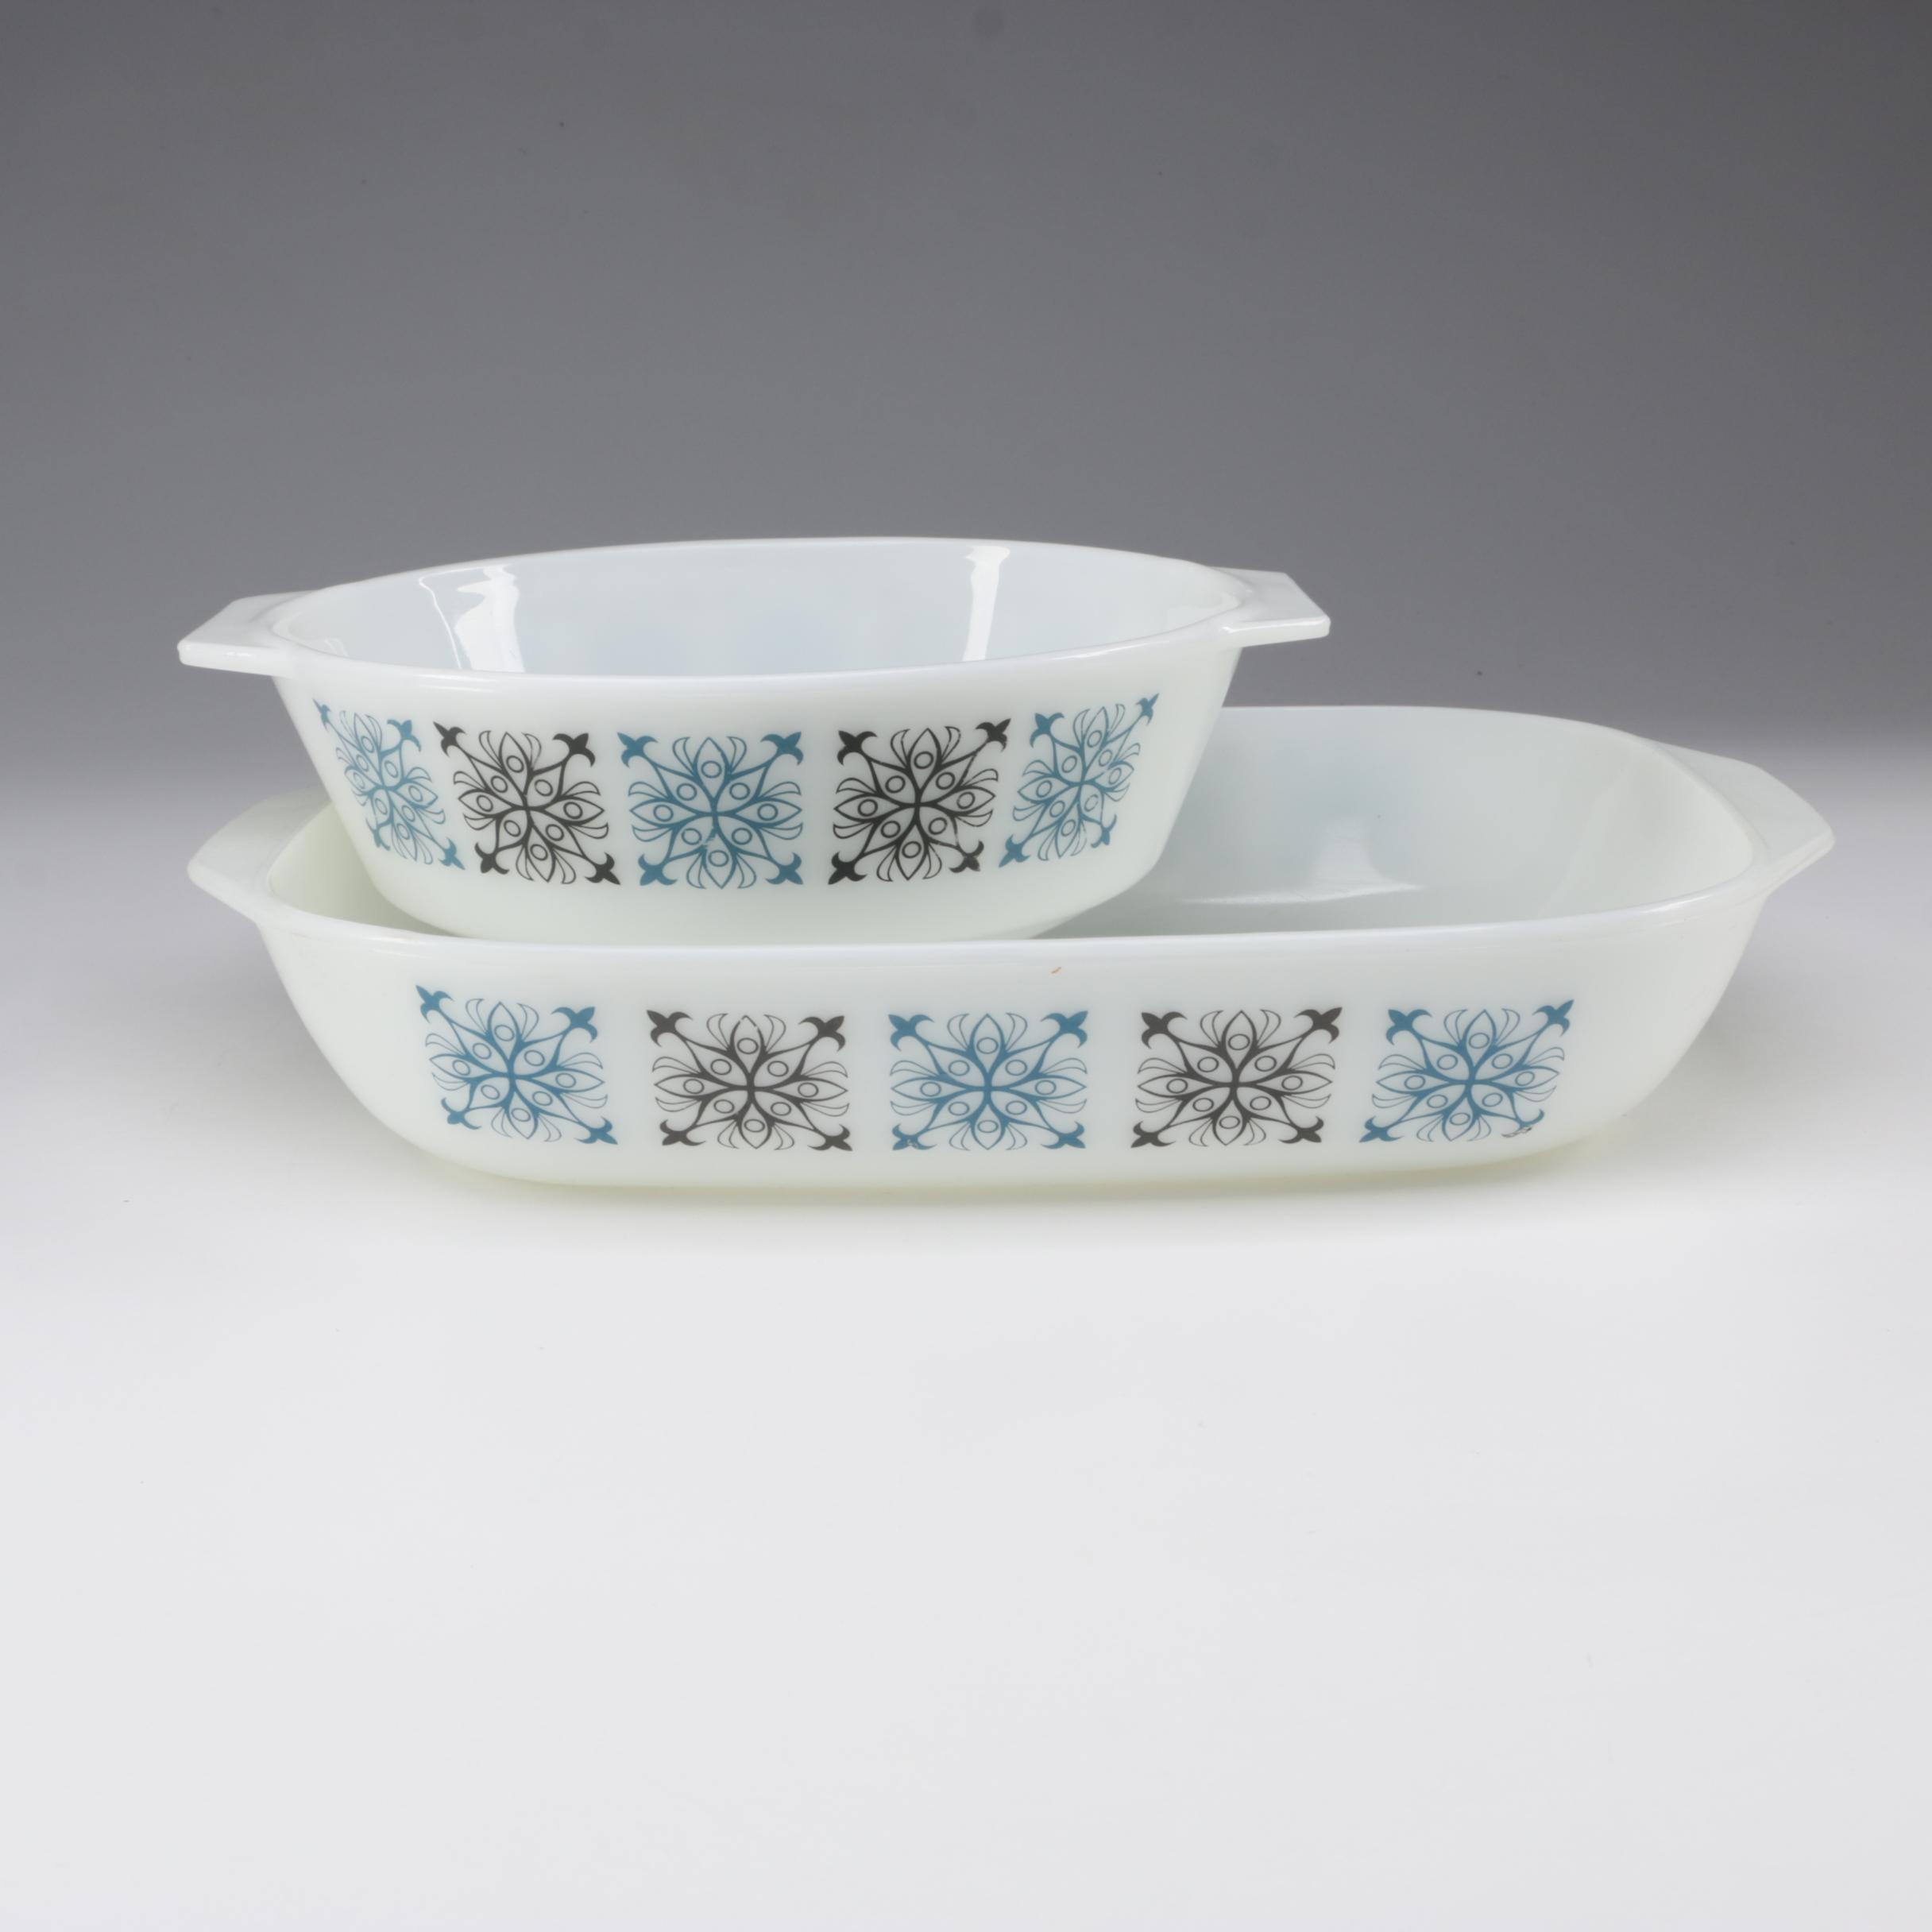 "James A. Jobling for Pyrex ""Chelsea"" Glass Casserole and Baking Dishes, 1967"